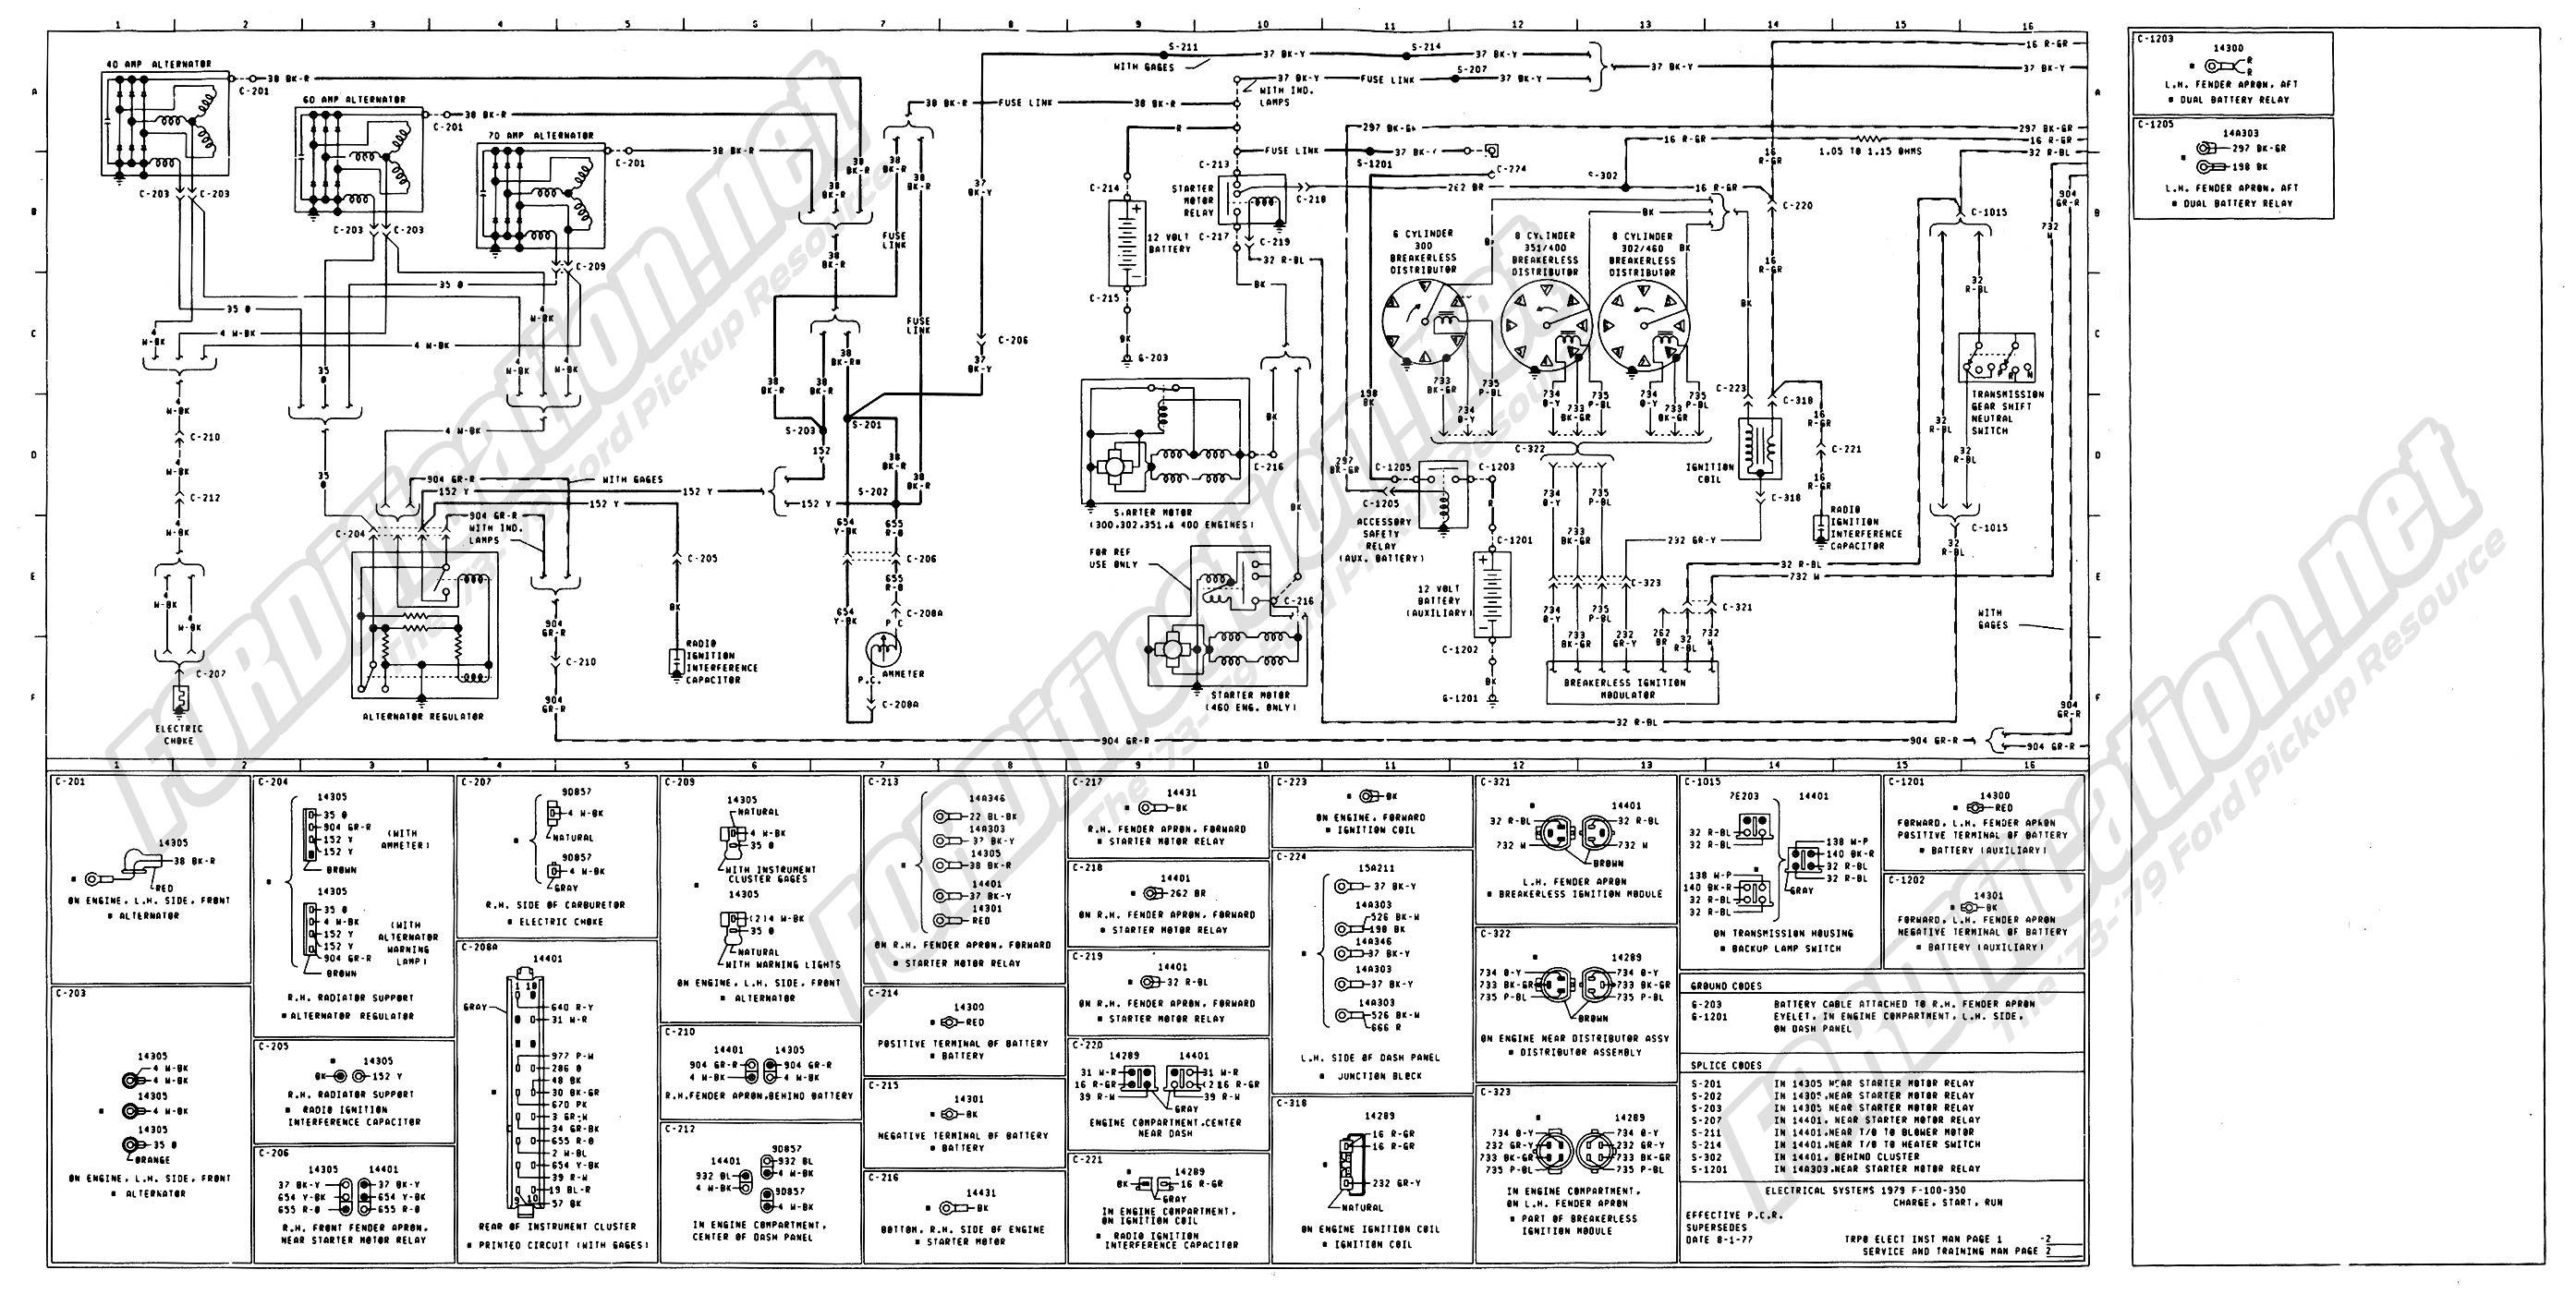 1973 1979 ford truck wiring diagrams schematics fordification net rh fordification net 1979 ford truck wiring diagram 1979 ford f150 wiring diagram free